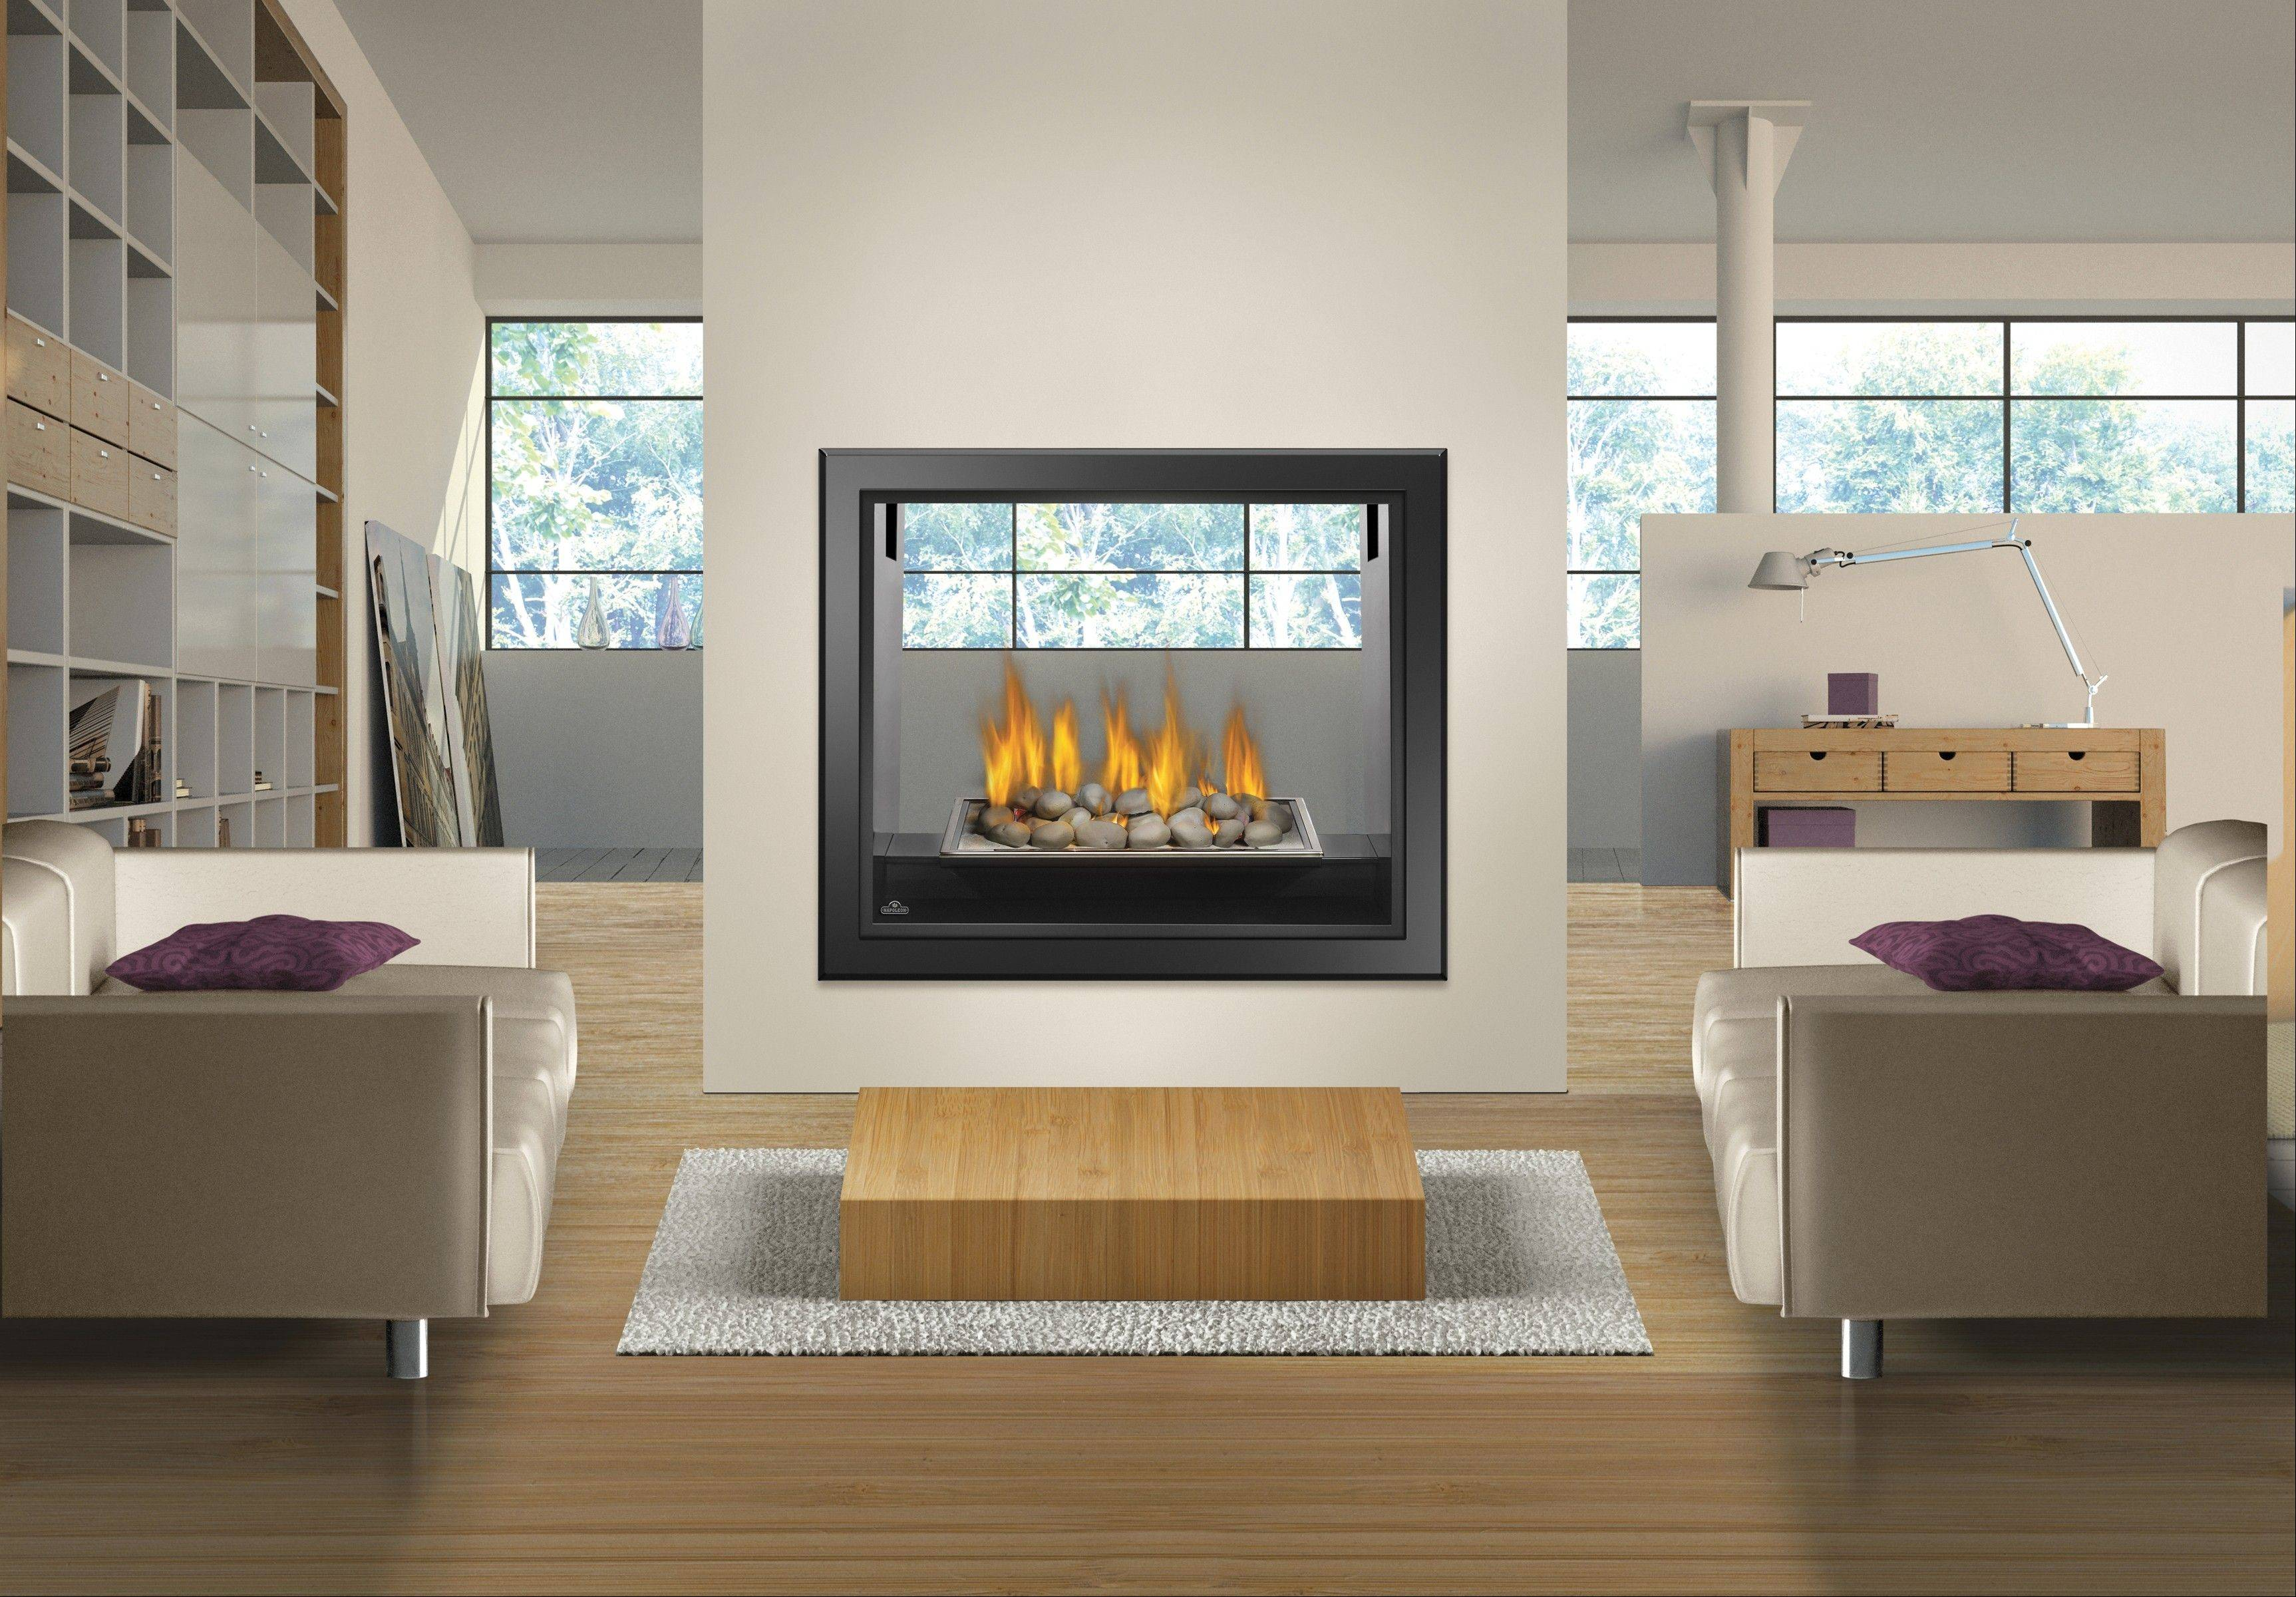 Fireplaces Plus offers FireStones, which are similar to gas logs, but provide a more contemporary feel to the fireplace.